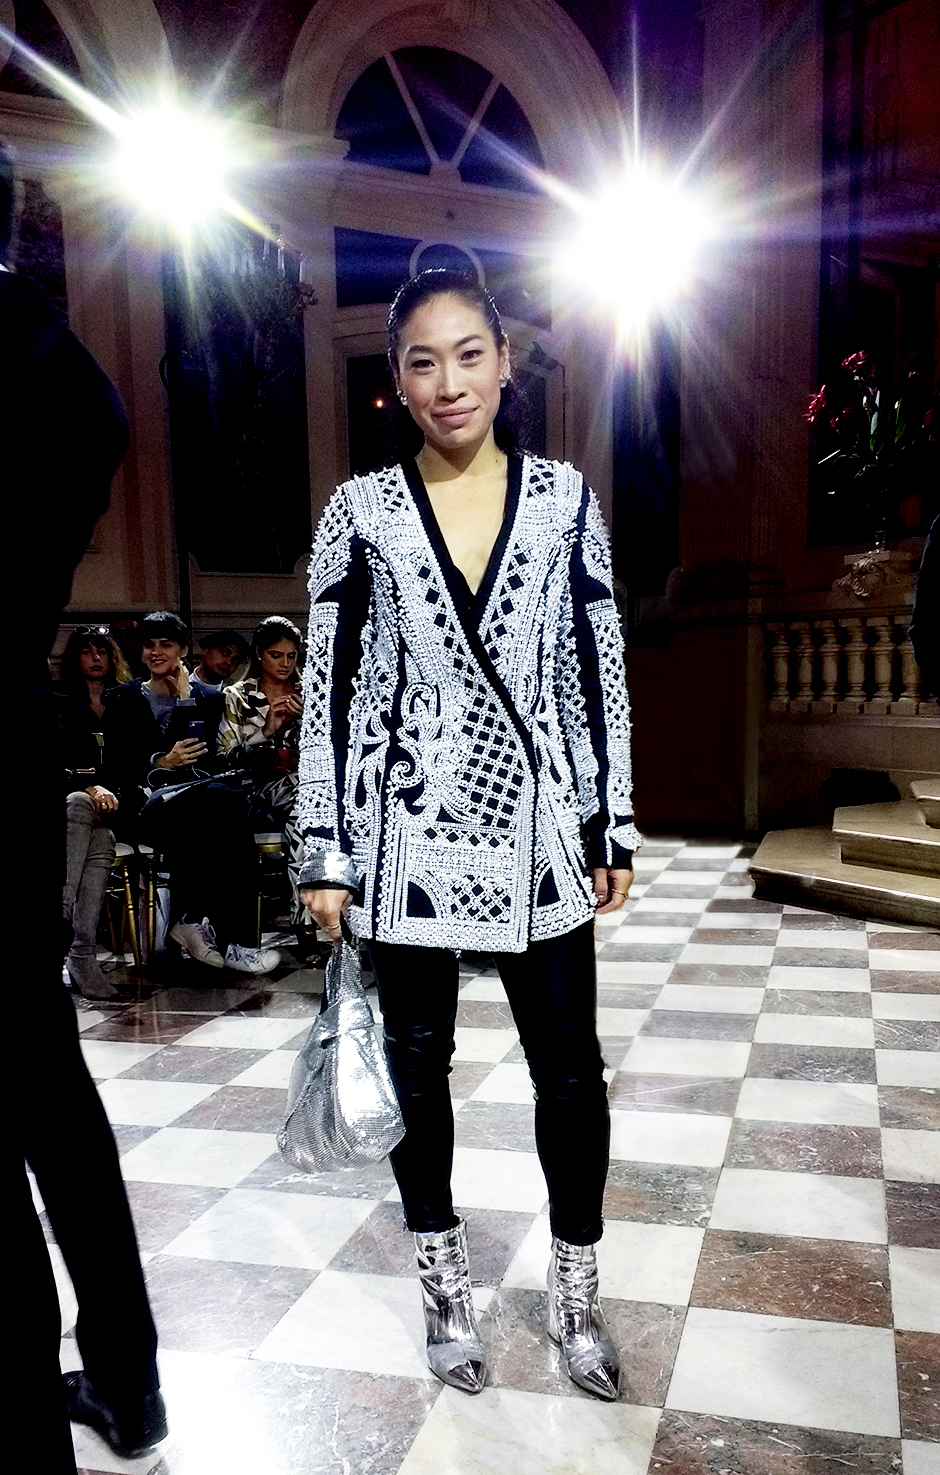 Paris Fashion Week Street Style Outfit #pearl #pearljacket #silverboots #streetstyle #outfit #pfw #pfw17 #ss18 #paris #fashionweek #runwayshow #trends #fashion #dresses #fashionblog #blogger #blog #fashionblogger #trends #fashiontrend #styleblog